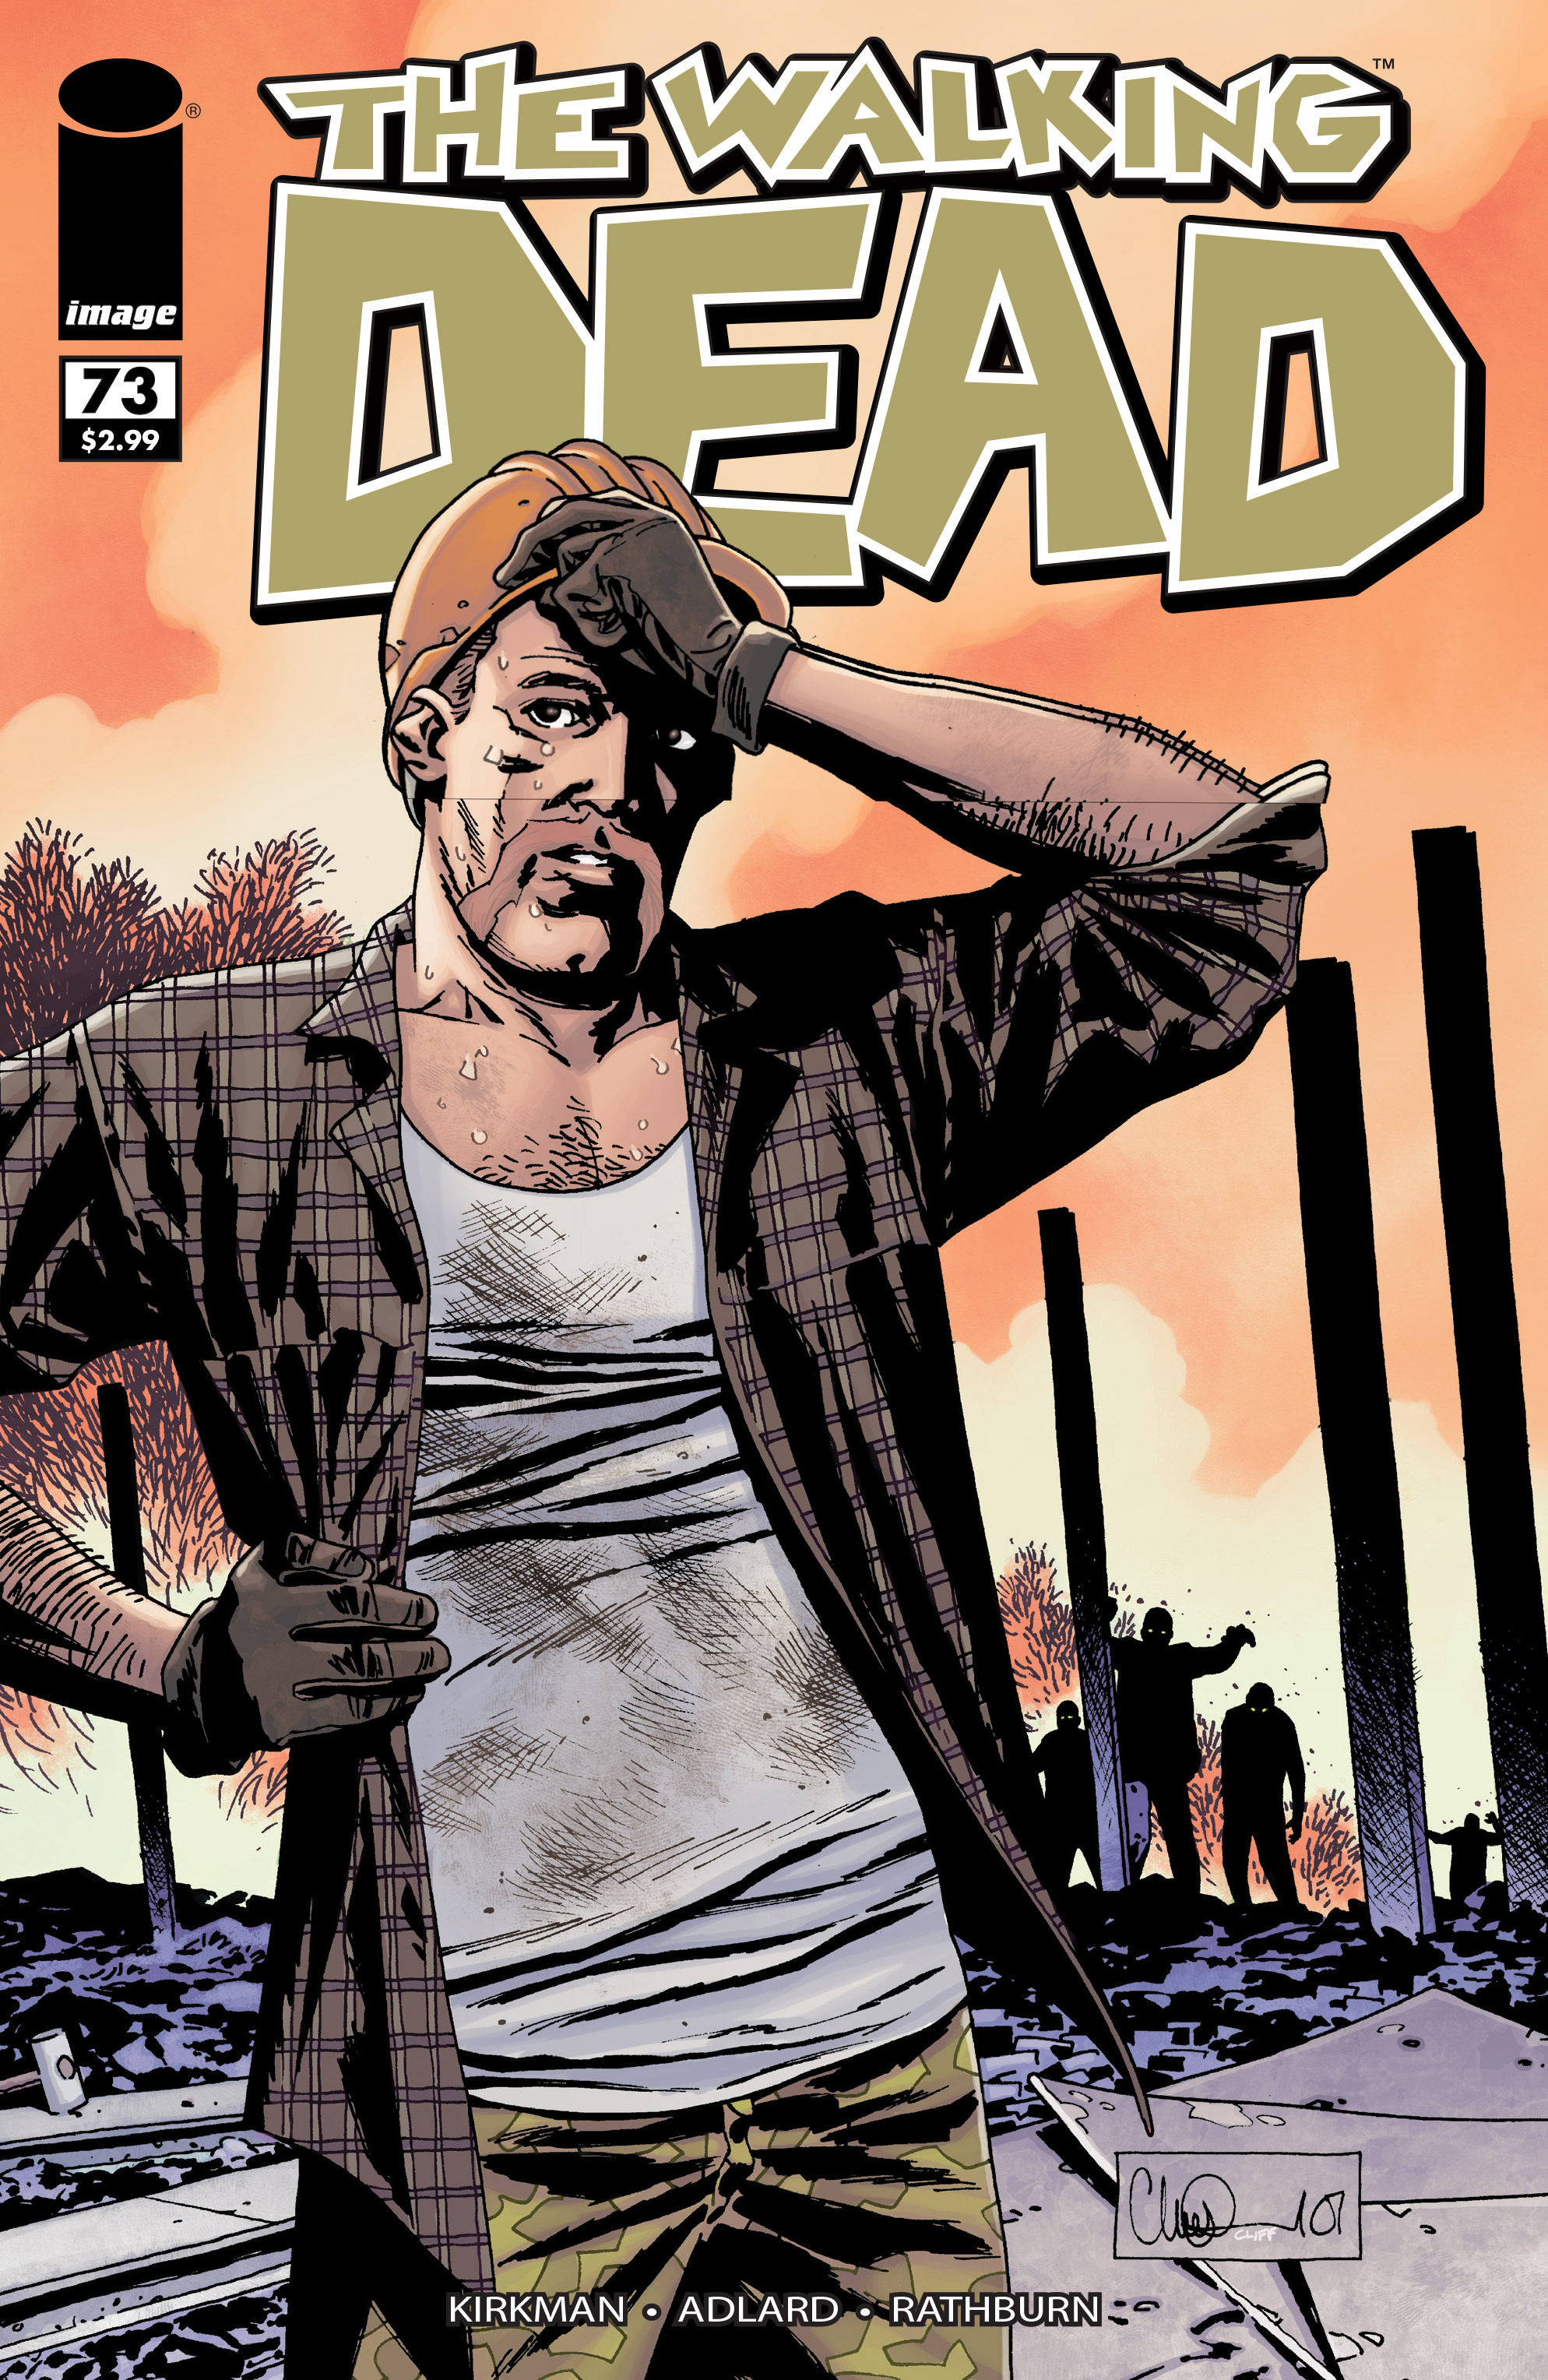 The Walking Dead 73 Page 1